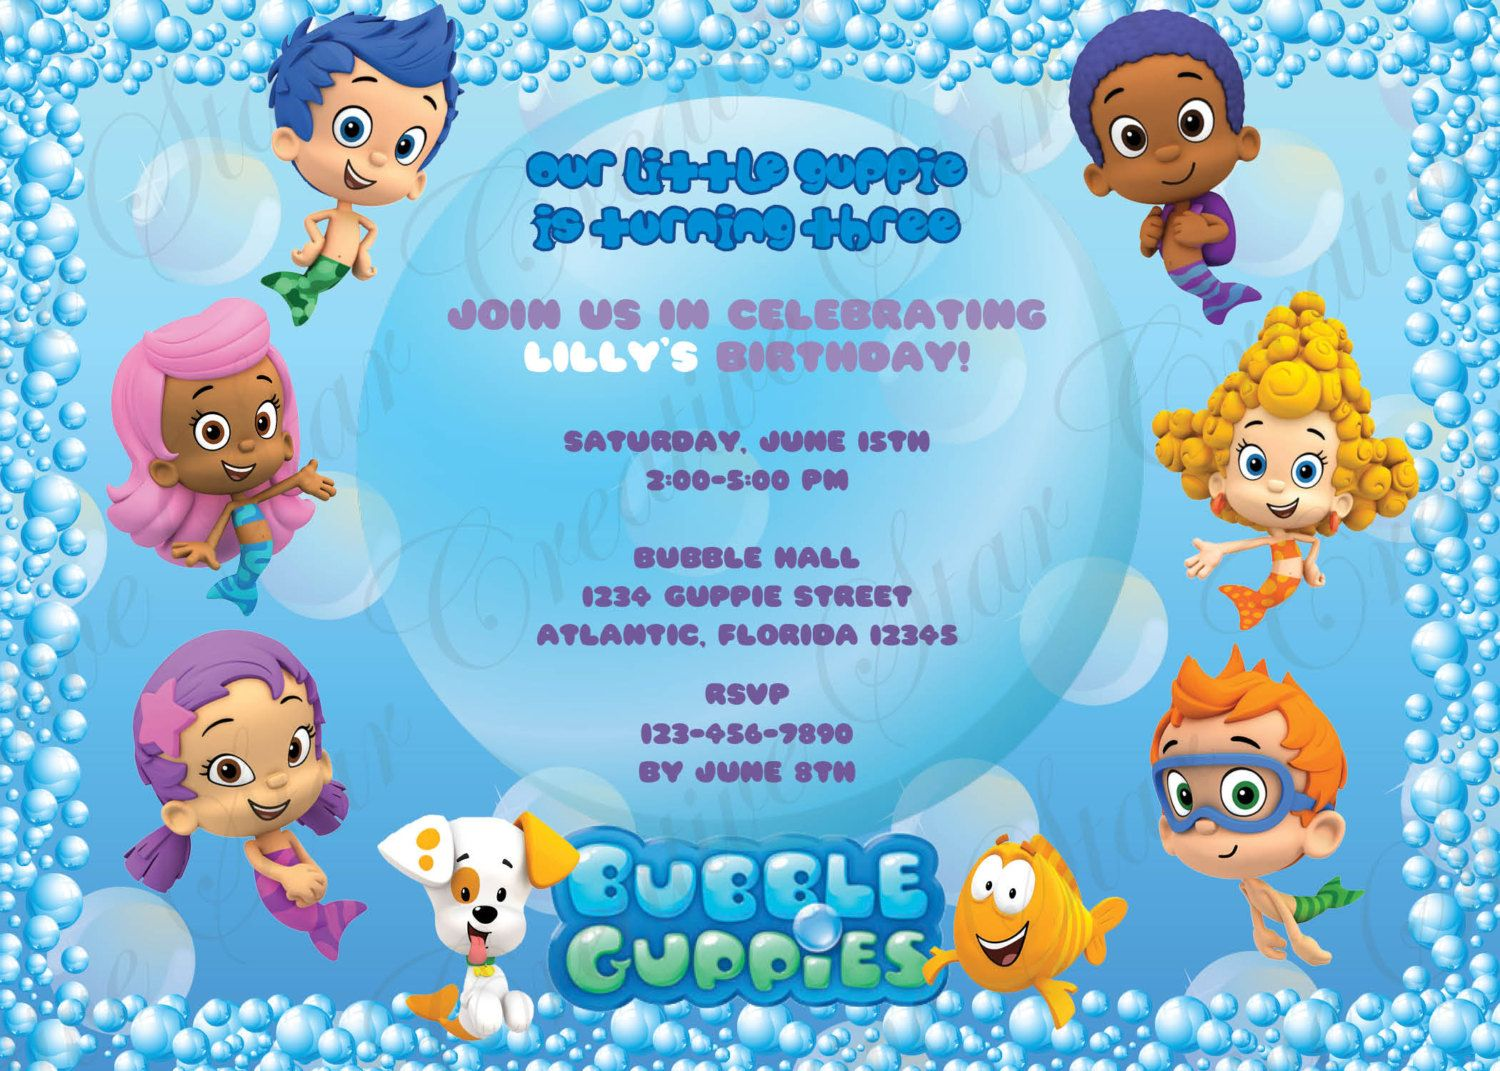 Free Invitations Template Bubble Guppies Invitations Templates – Bubble Guppies Party Invites